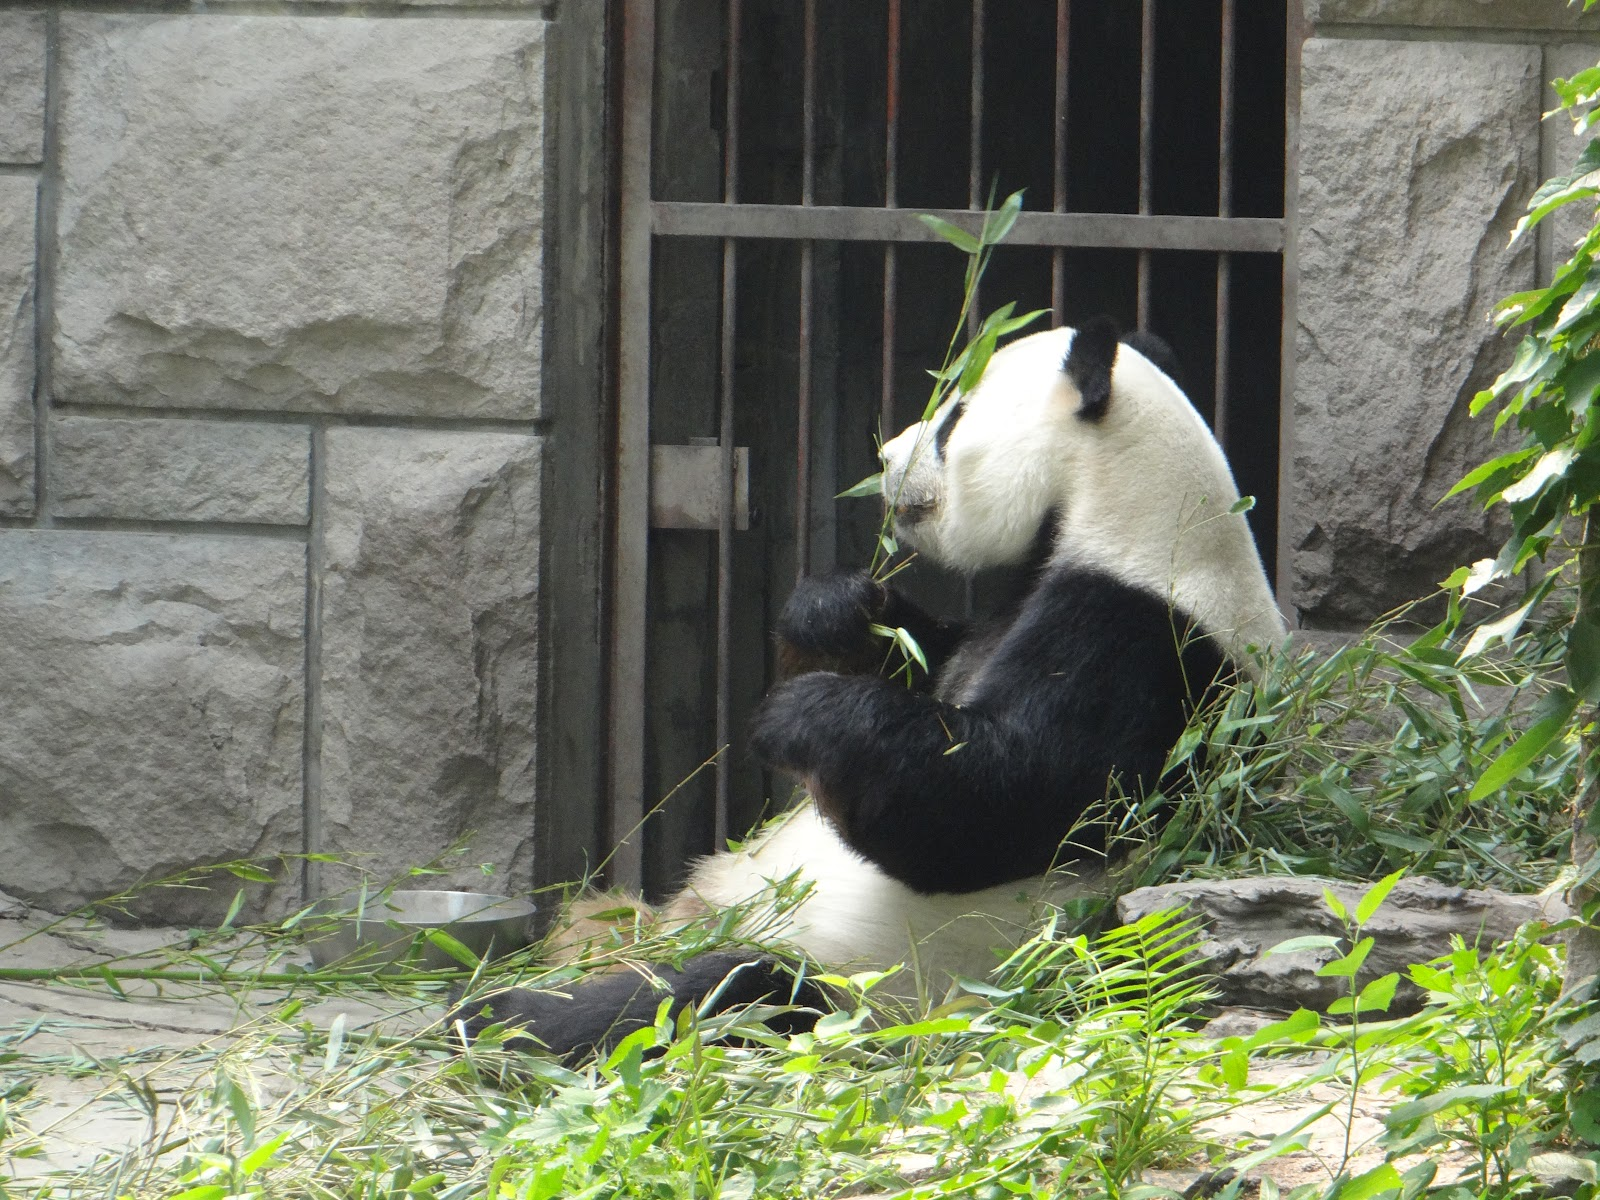 an analysis of giant pandas Delayed implantation is believed to occur in giant pandas based on hormone  analyses (hodges et al 1984, chaudhuri et al 1988) and the observed.